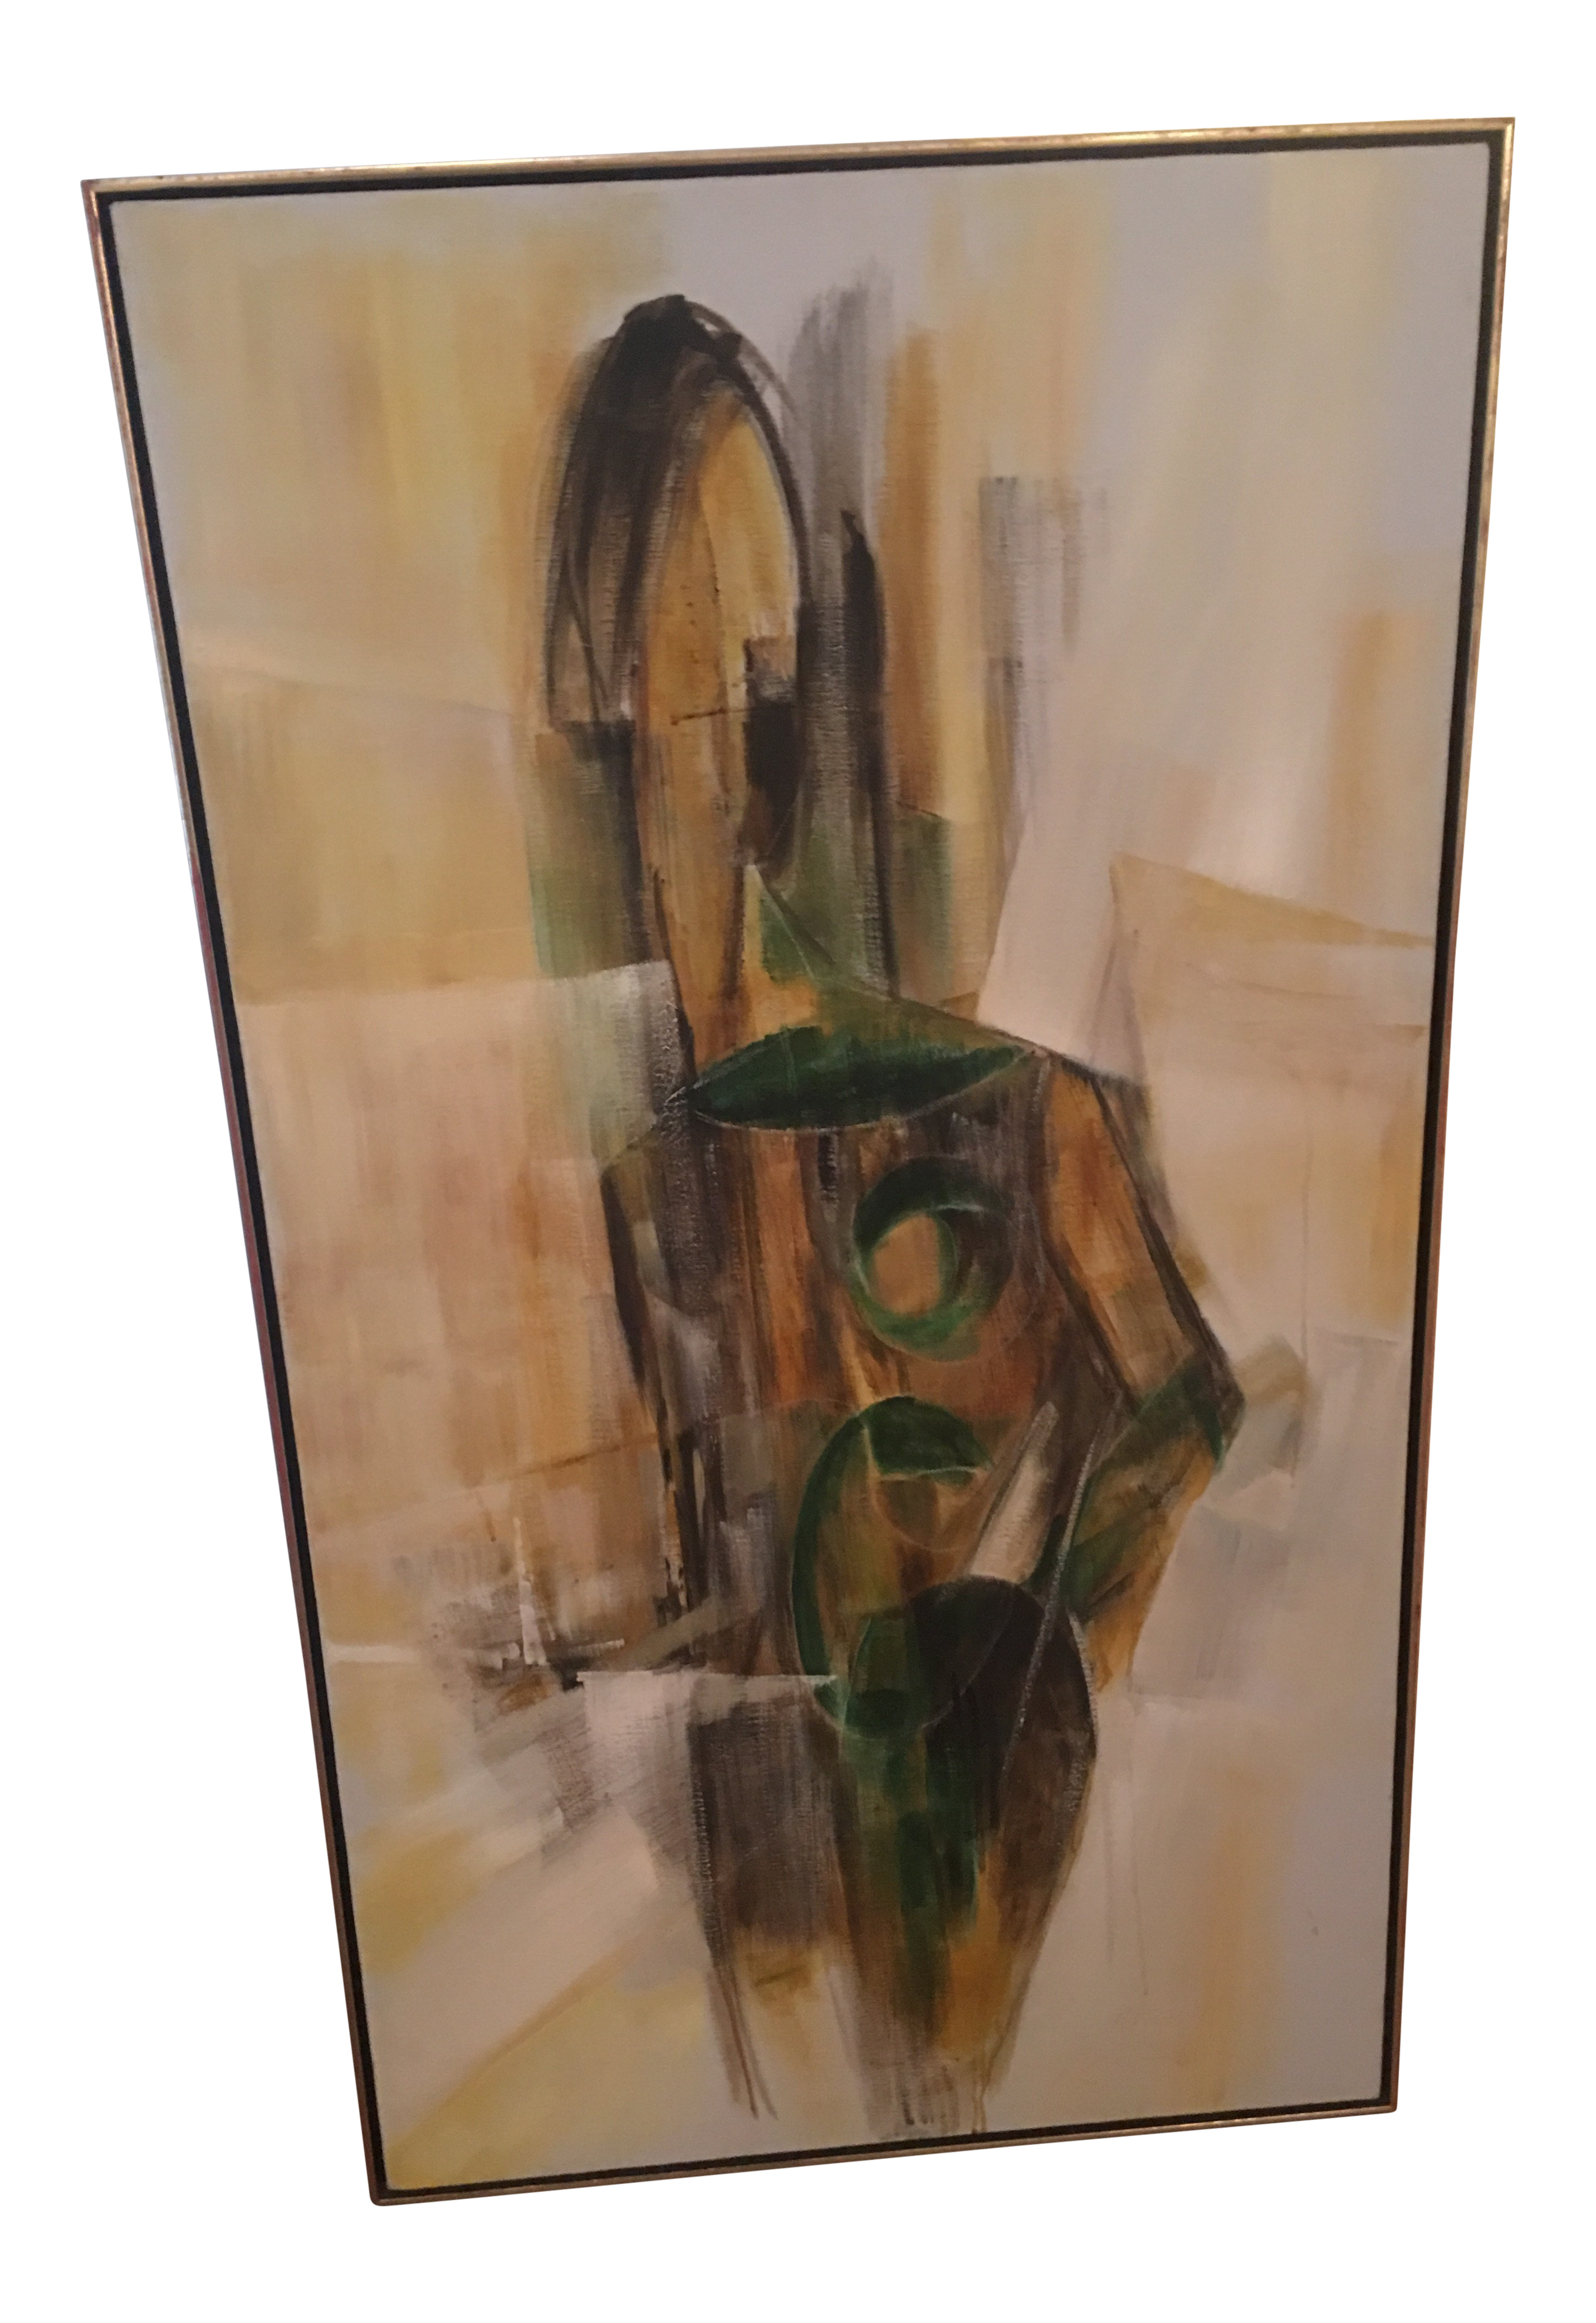 Acrylic drawing life. Large abstract cubist figure